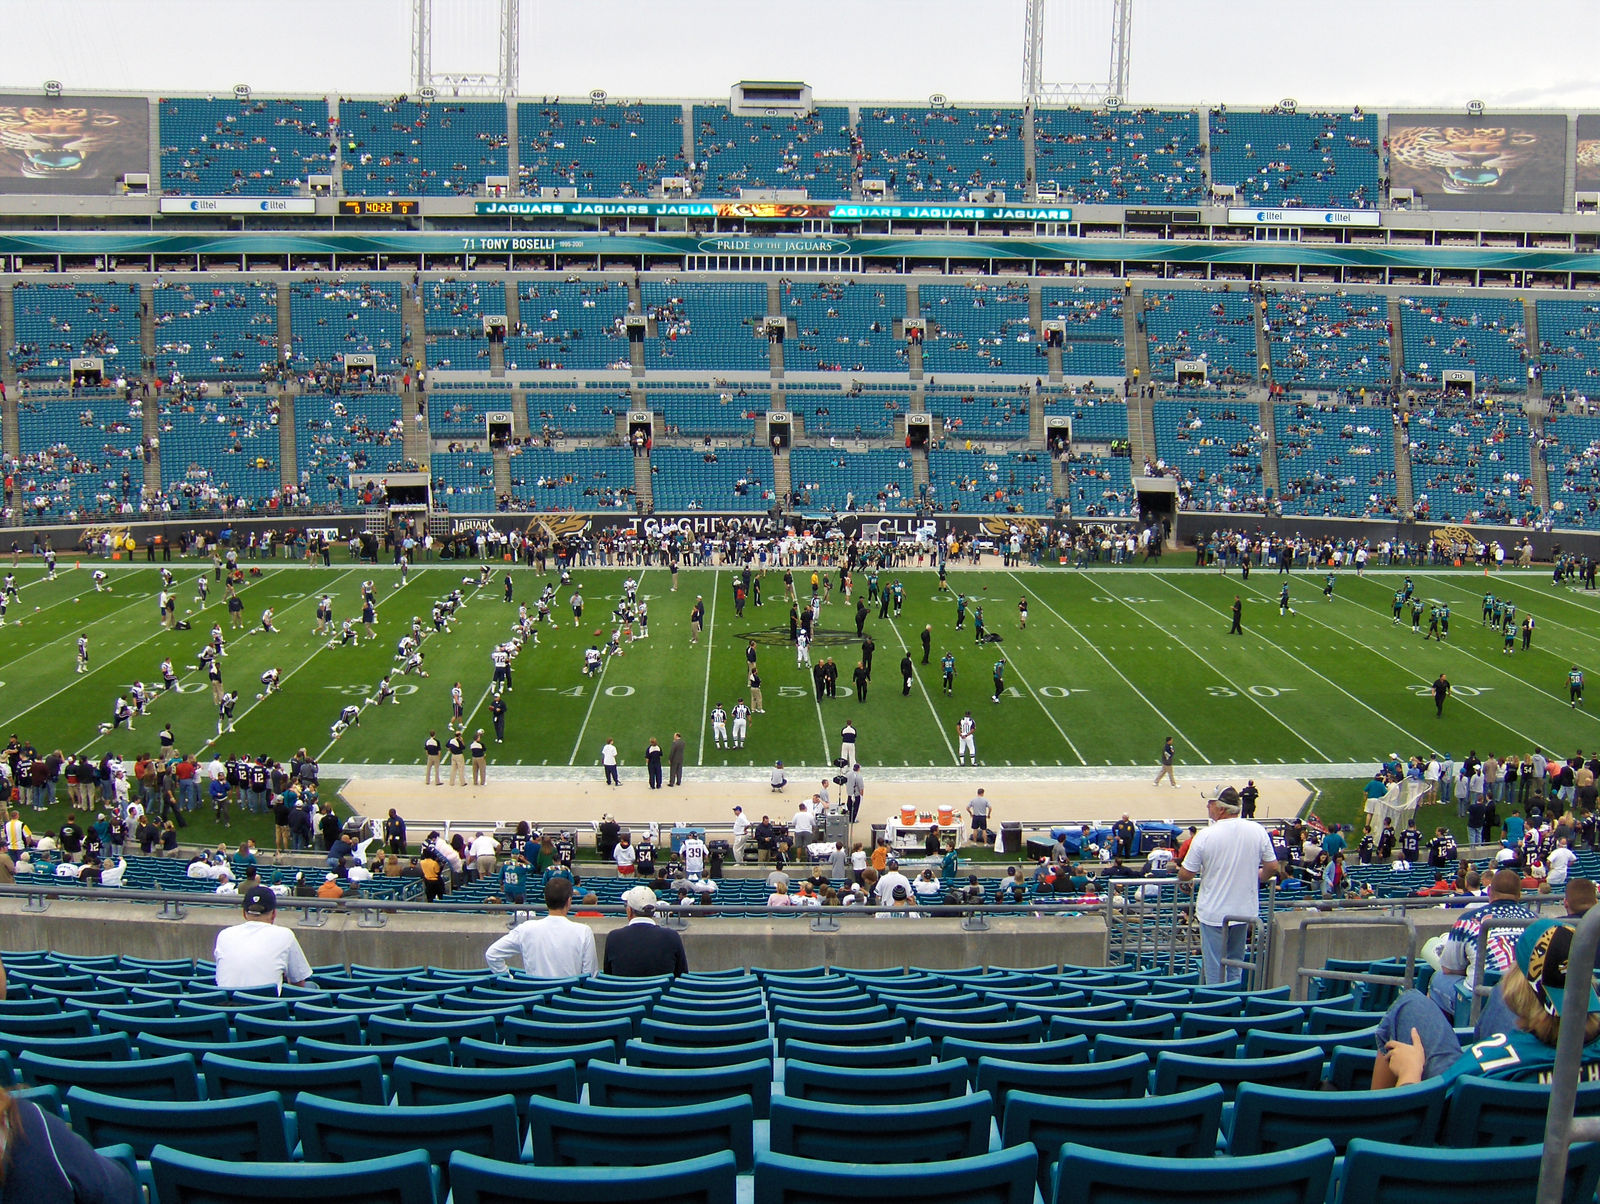 Lucas Oil Stadium Seating Chart, Pictures, Directions, And Jacksonville  Jaguars Stadium Pictures